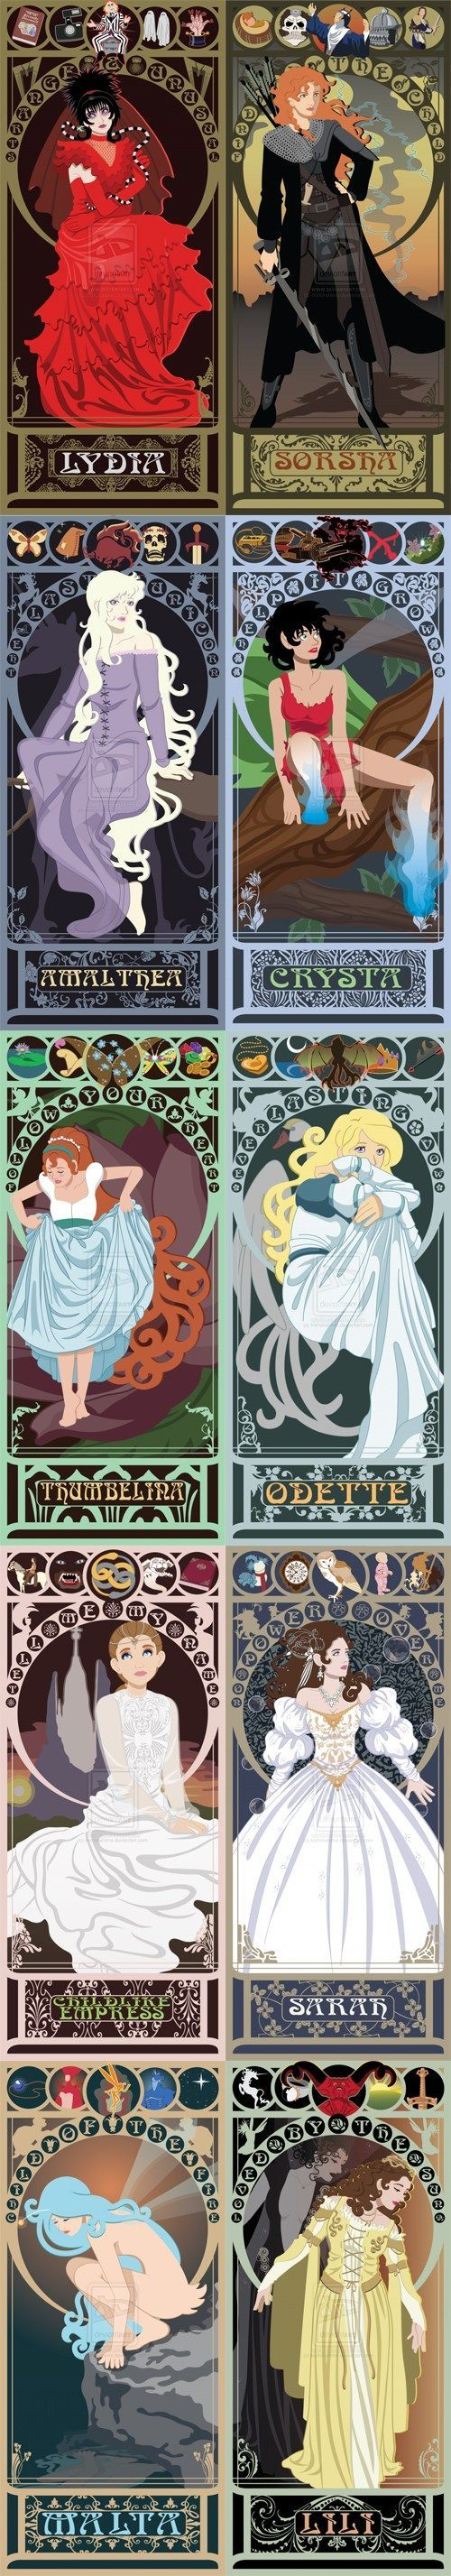 Interesting mix of female characters….Lili from 'Beetlejuice' / Sorsha from 'Willow' / Amalthea from 'The Last Unicorn' / Crysta from 'Fern Gully' / Thumbelina from the Don Bluth version of 'Thumbelina' / Odette from 'The Swan Princess' / The Childlike Empress from 'The Neverending Story' / Sarah from 'Labyrinth' / Malta from 'Sea Prince and the Fire Child' / Lili from 'Legend'